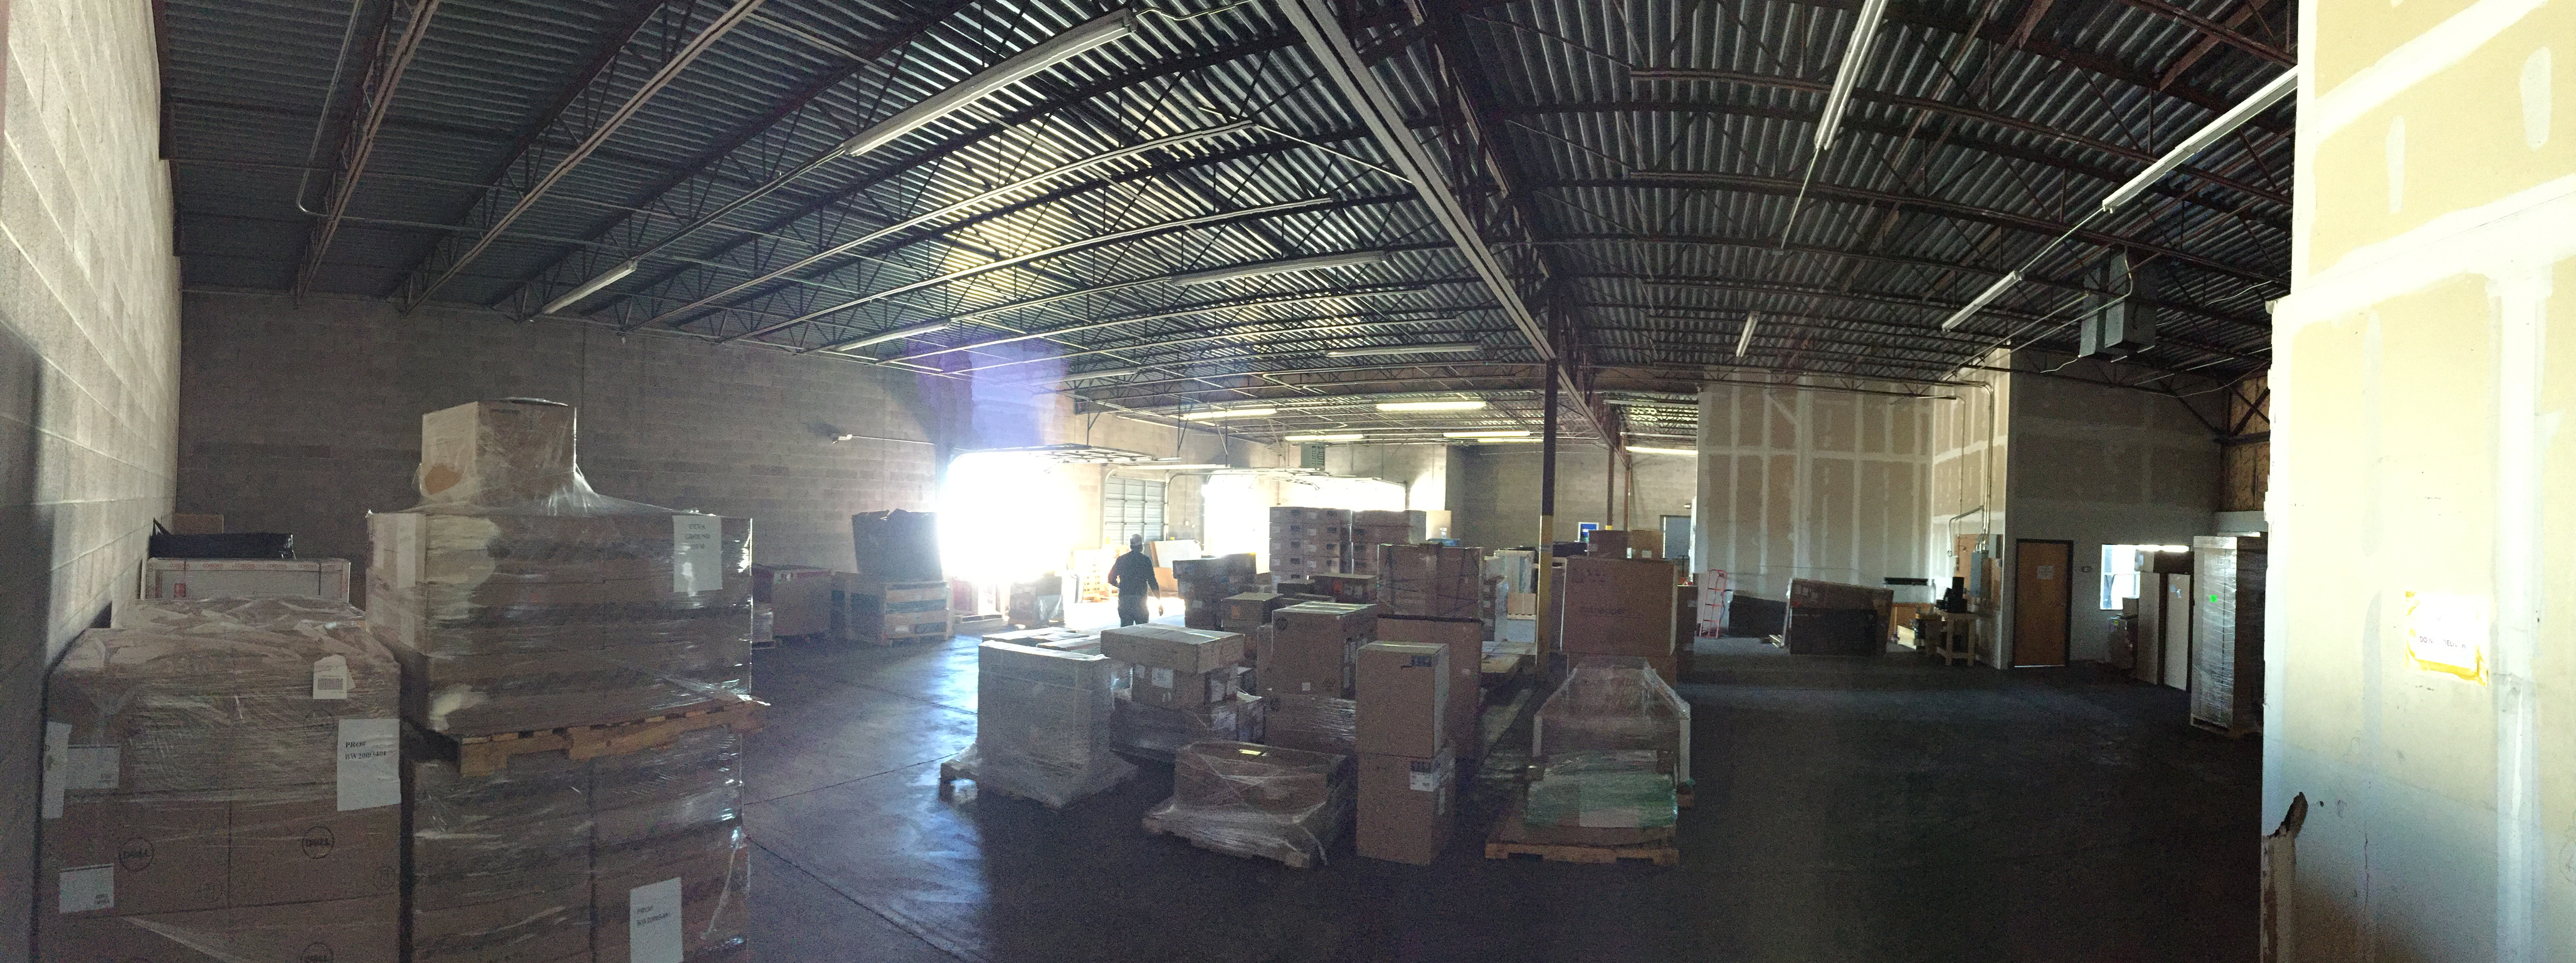 Inside Warehouse Facing West